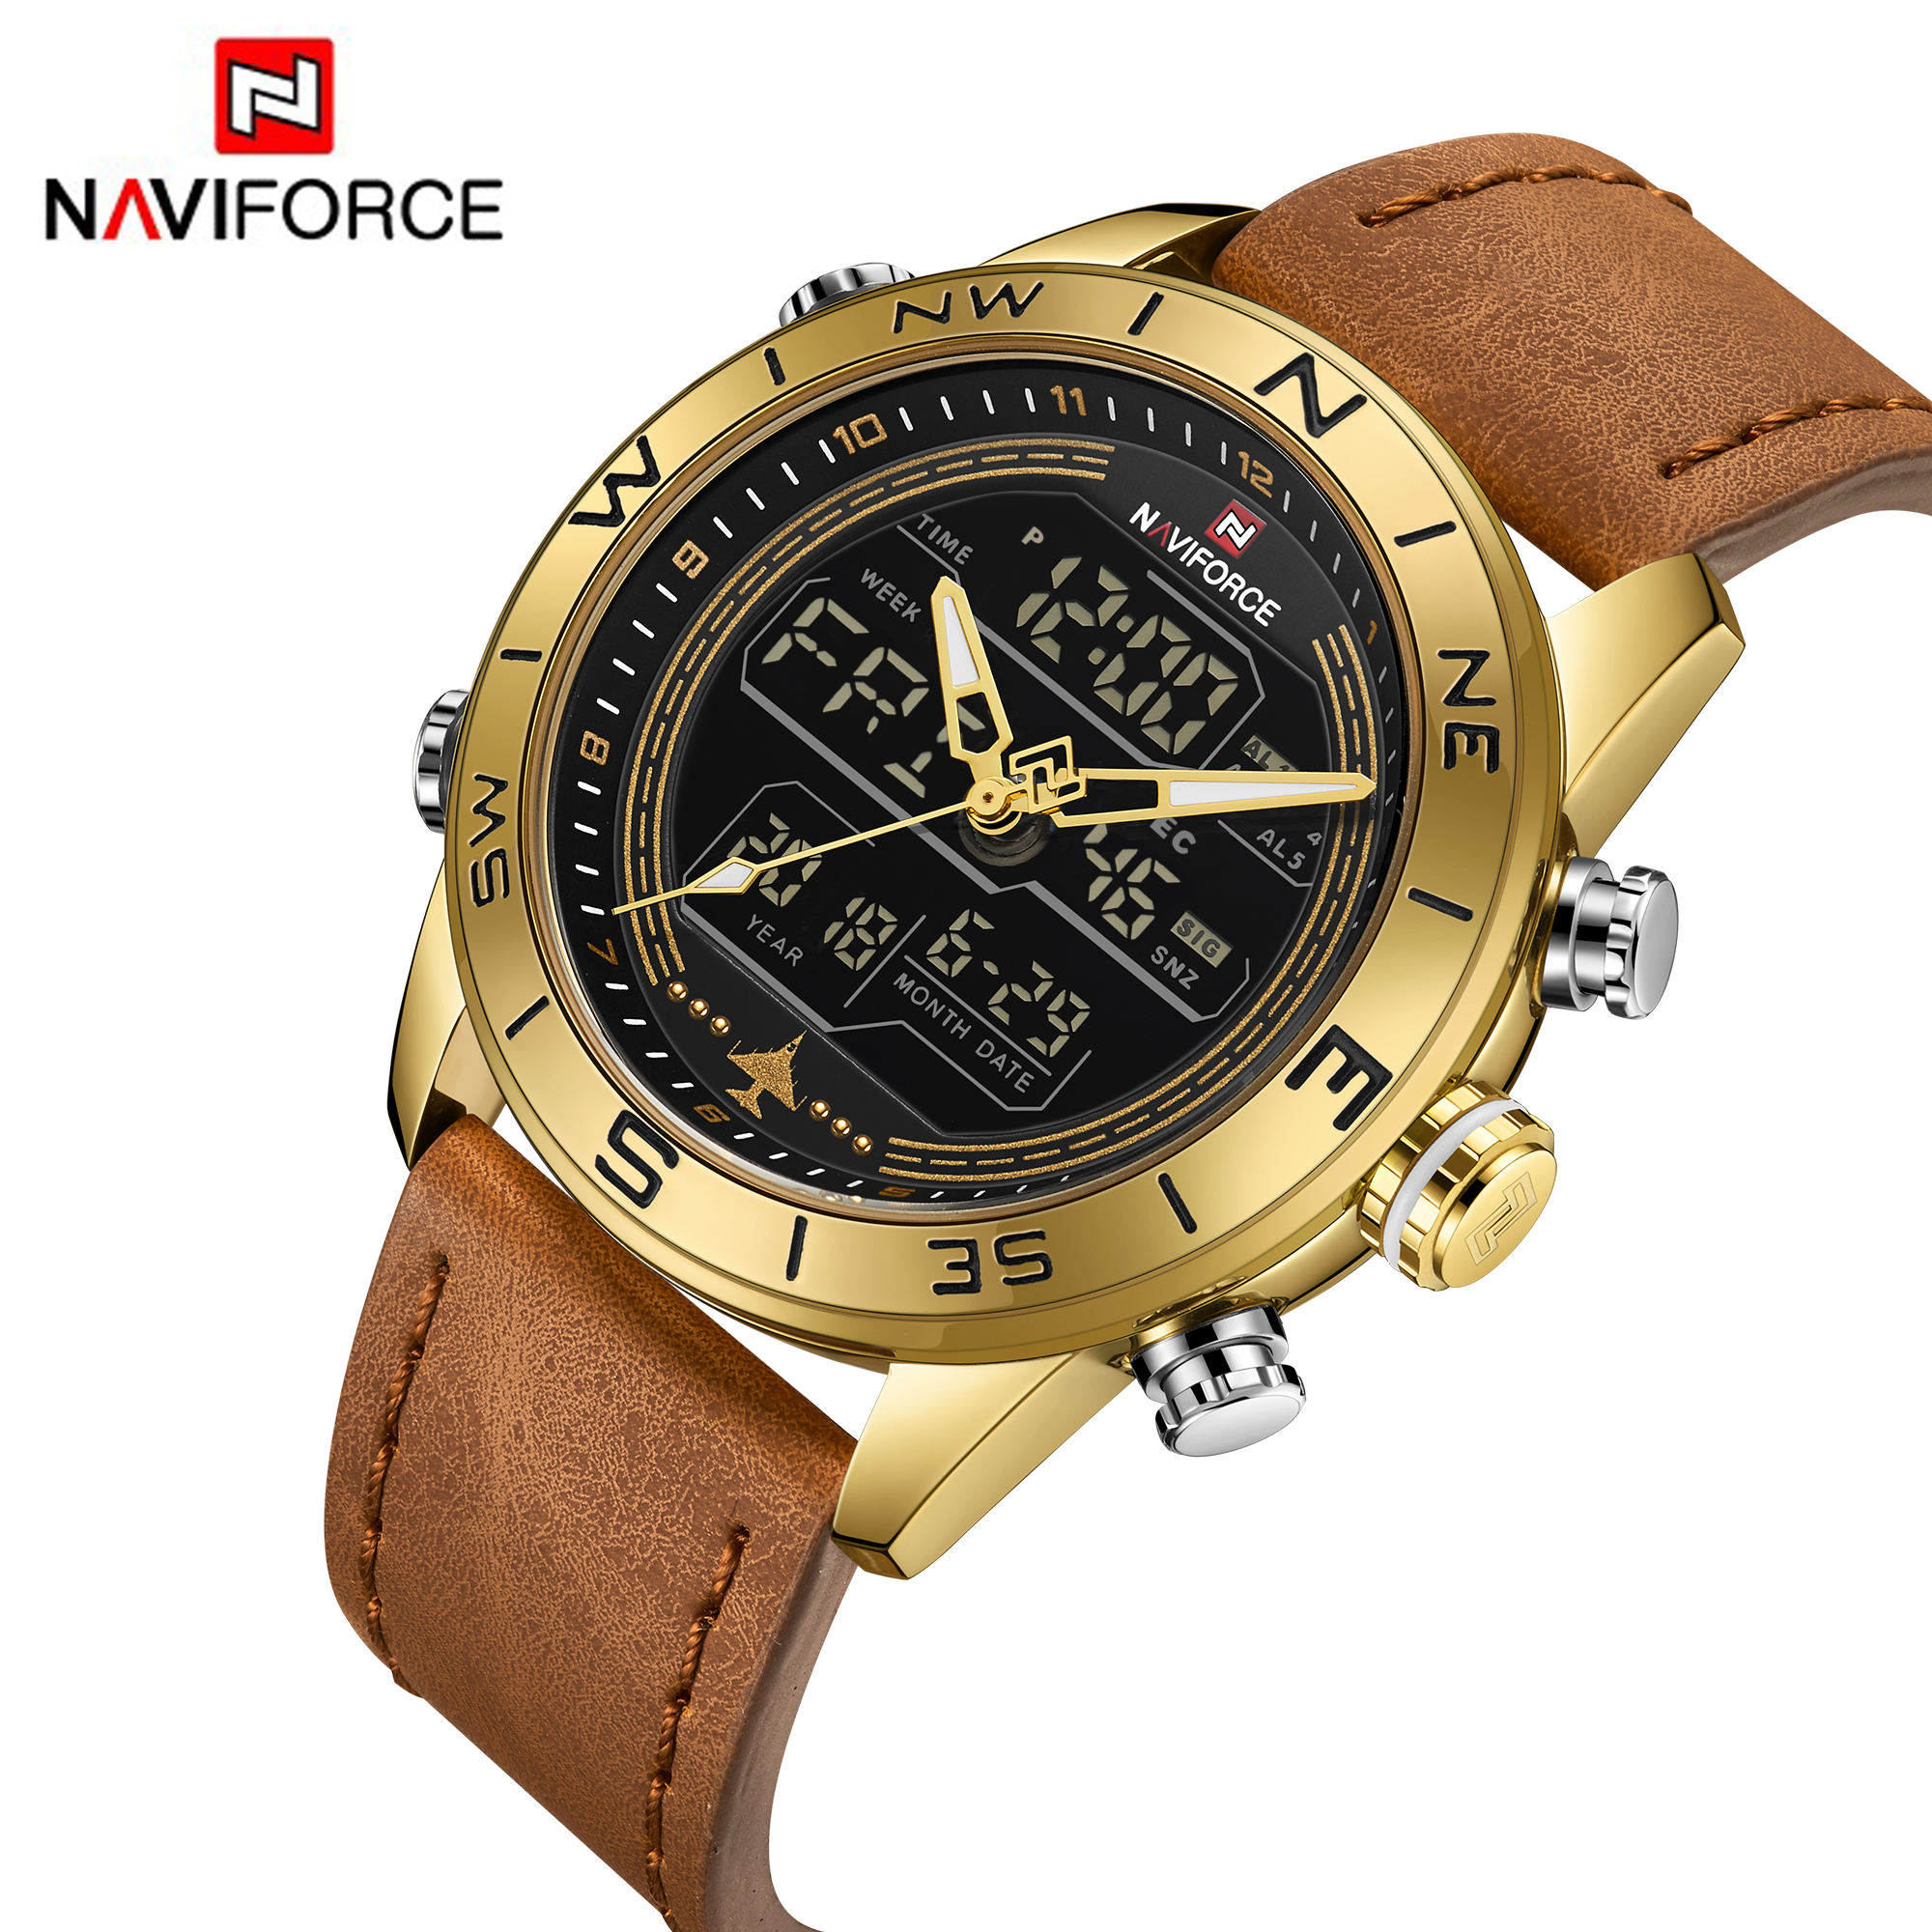 2019 naviforce 9144 new fashion sport digital 30m water proof men's wrist watches with blue genuine leather strap